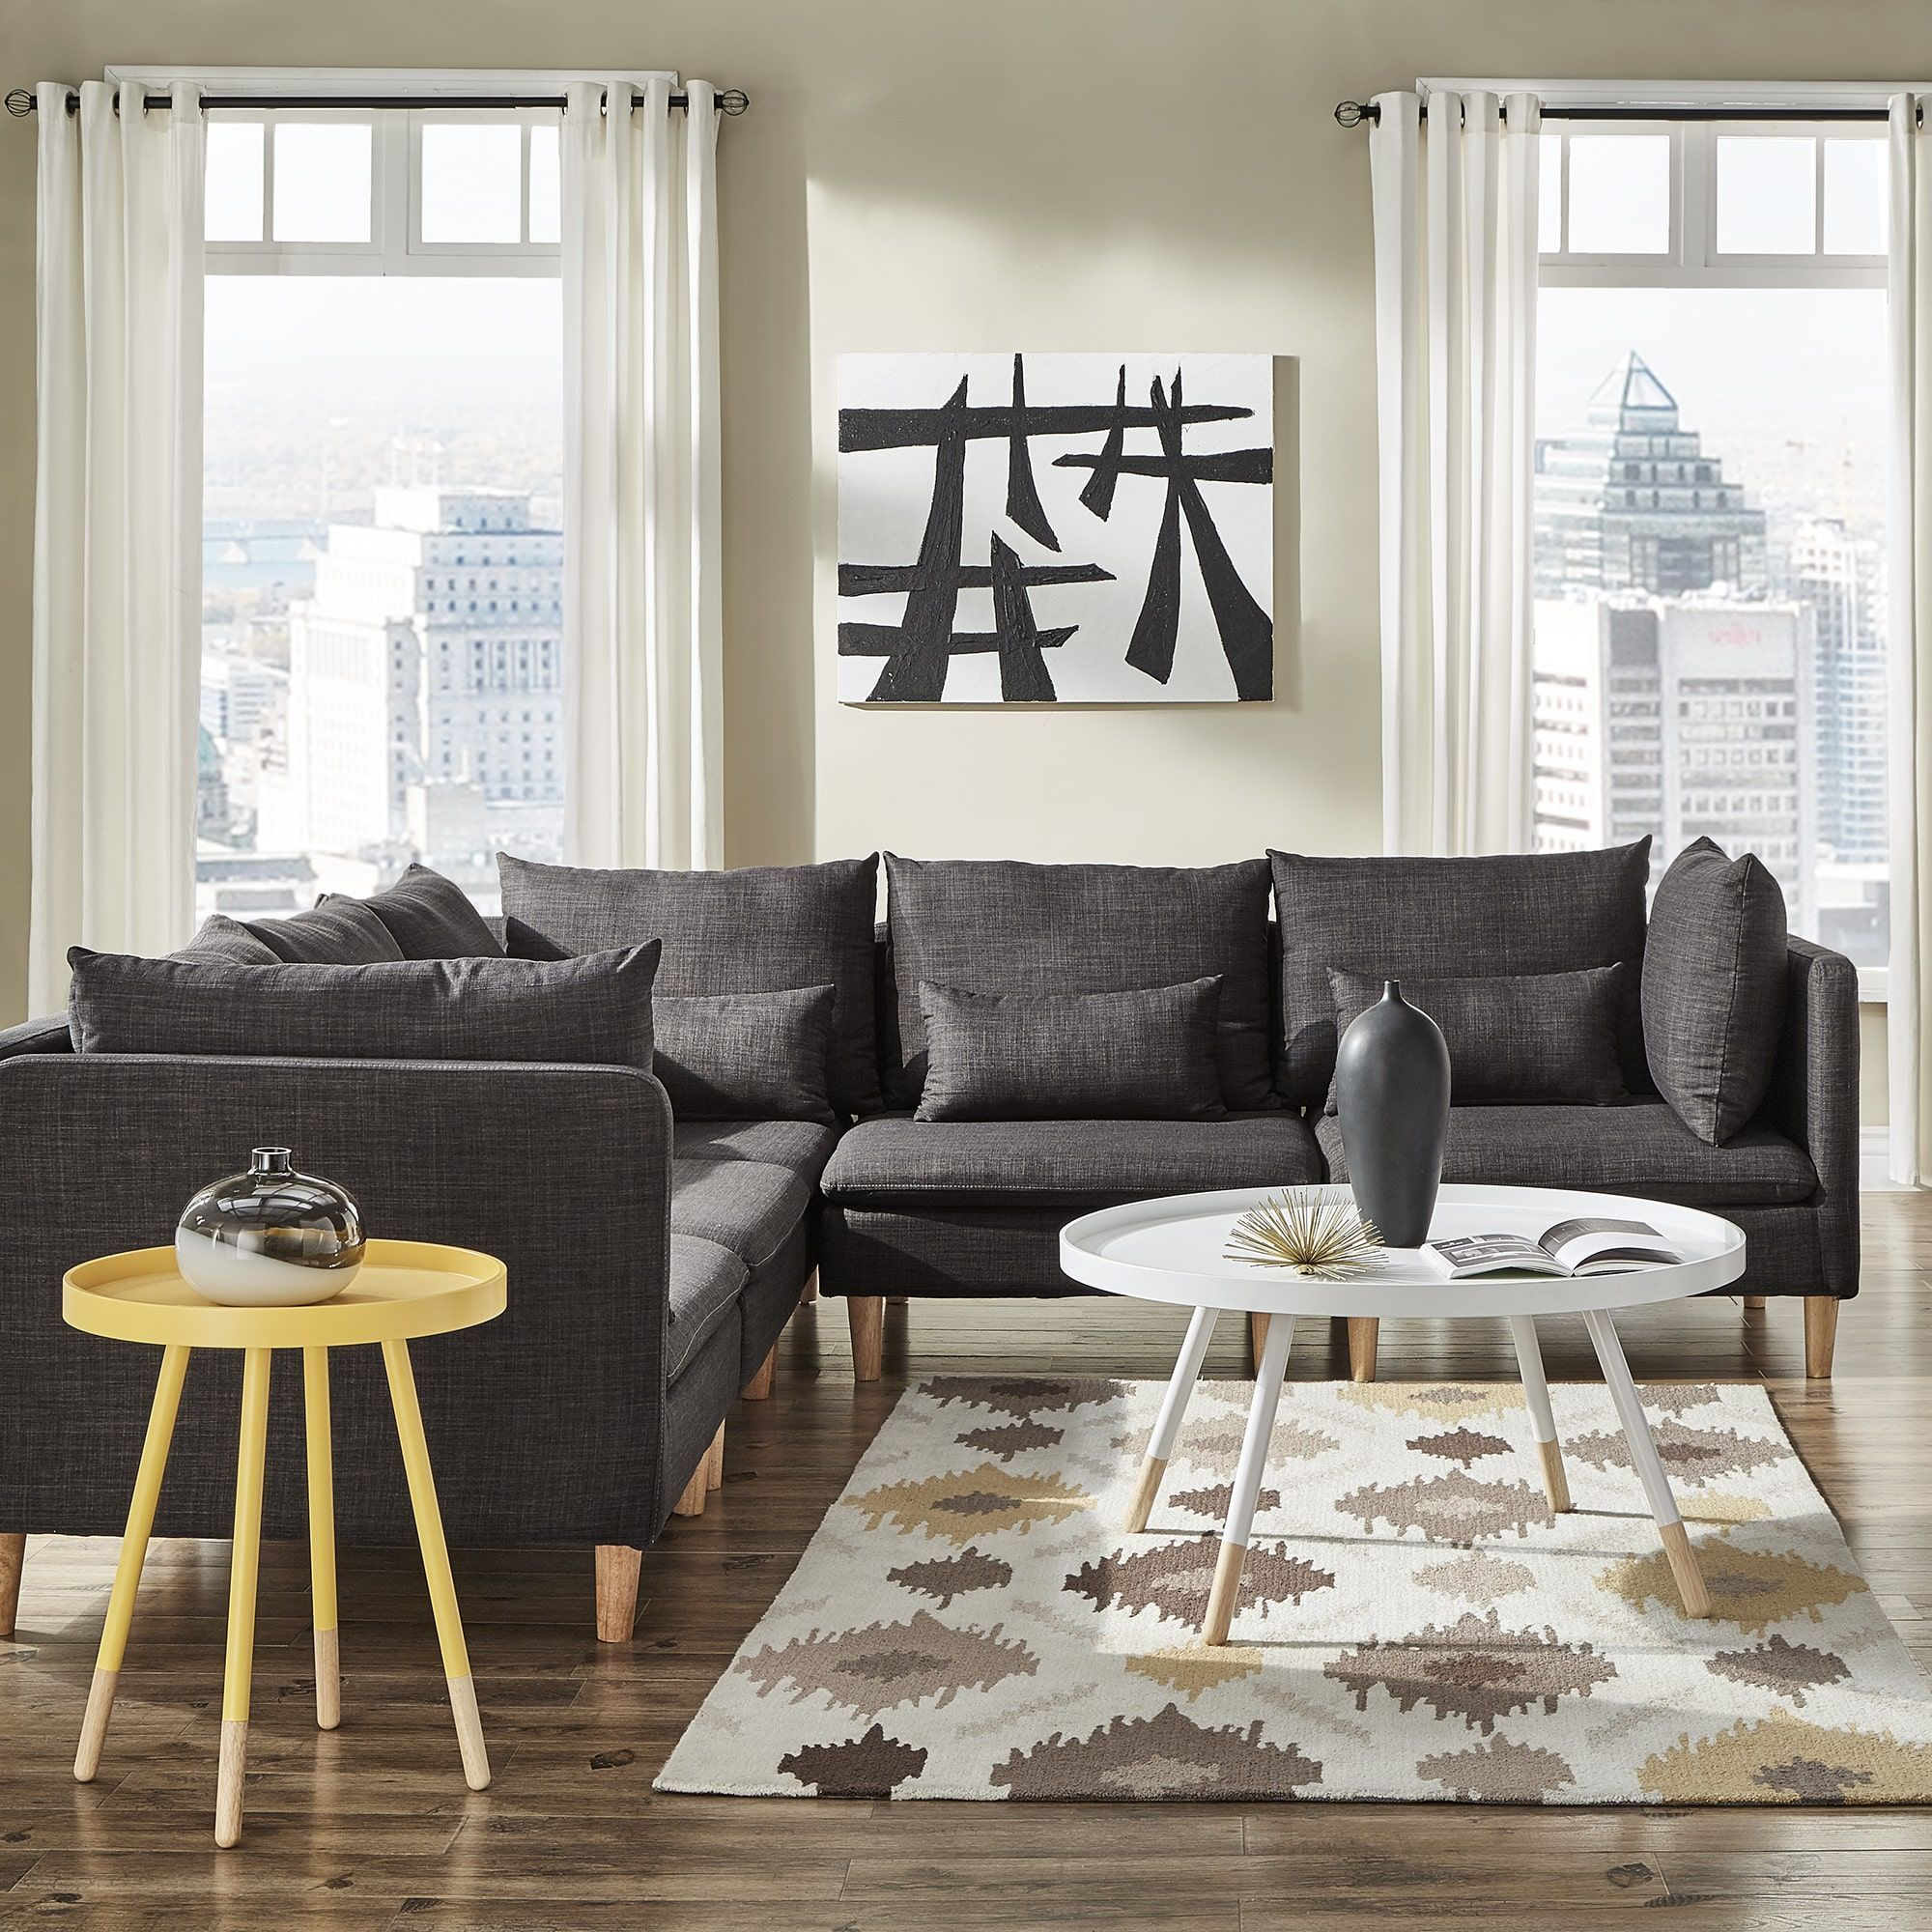 Malina Modular Fabric L-Shaped Sectional Sofa by iNSPIRE Q Modern by  iNSPIRE Q